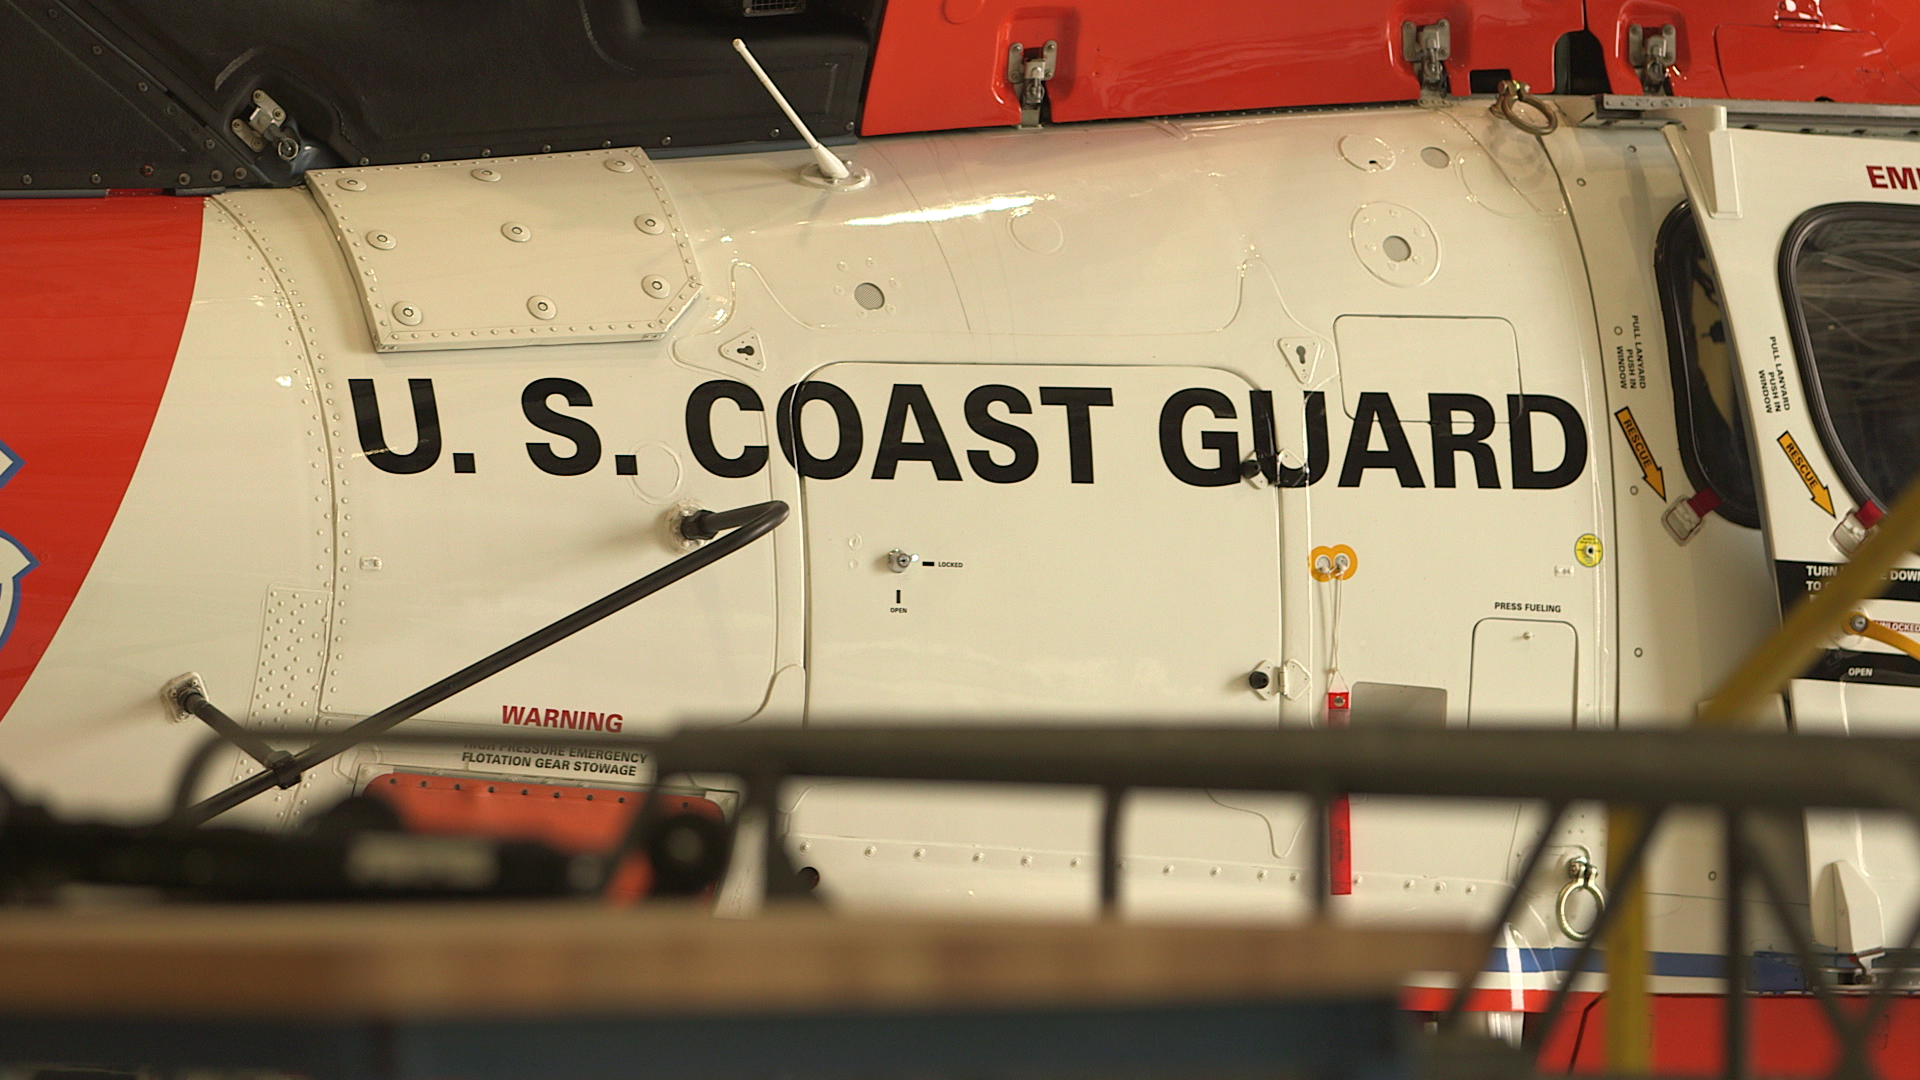 vlcsnap 2016 05 09 15h41m10s138 Texas DP Shoots For The Coast Guard Foundation